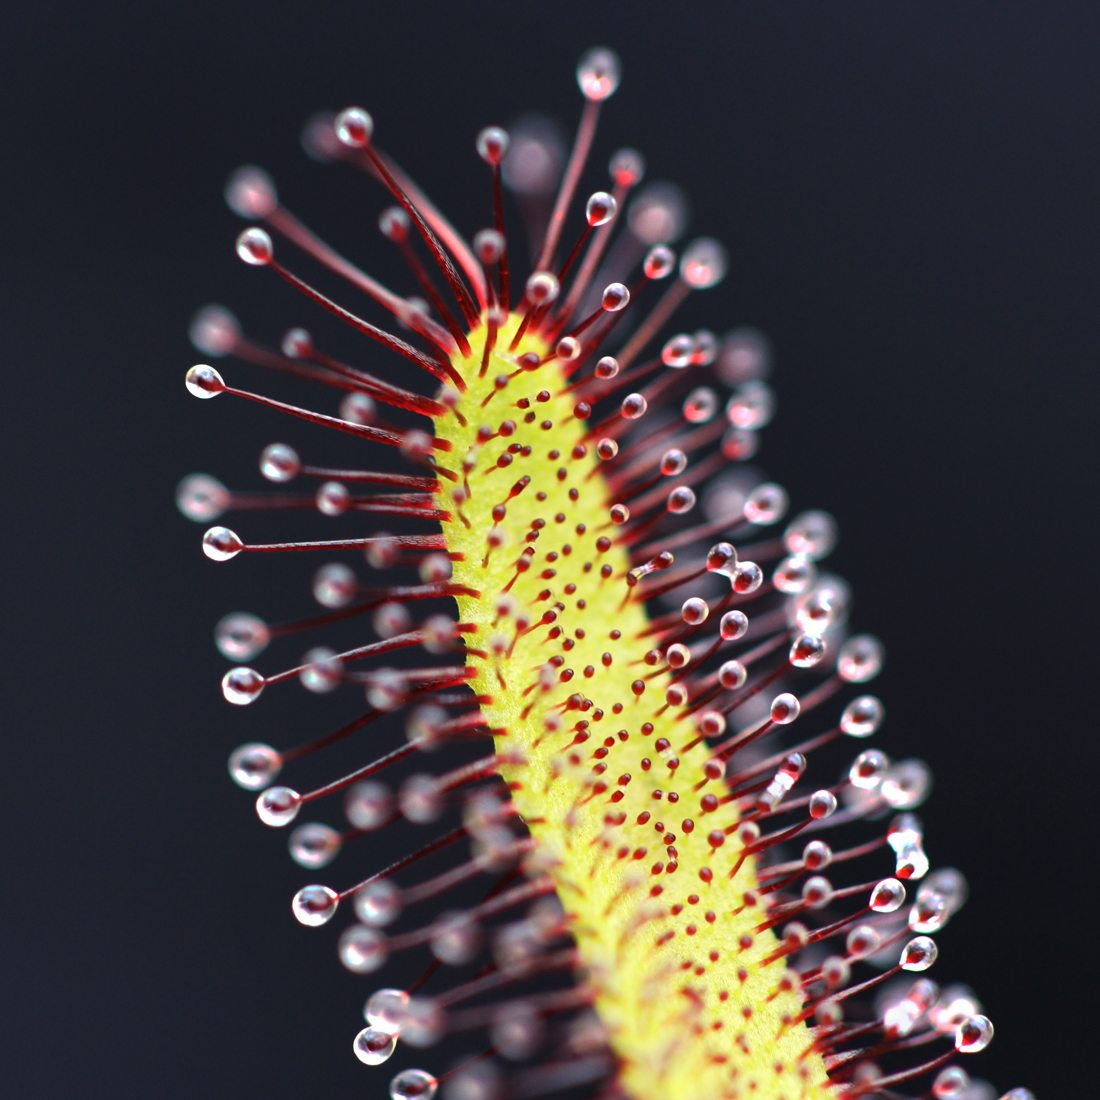 Drosera capensis 'Typical'